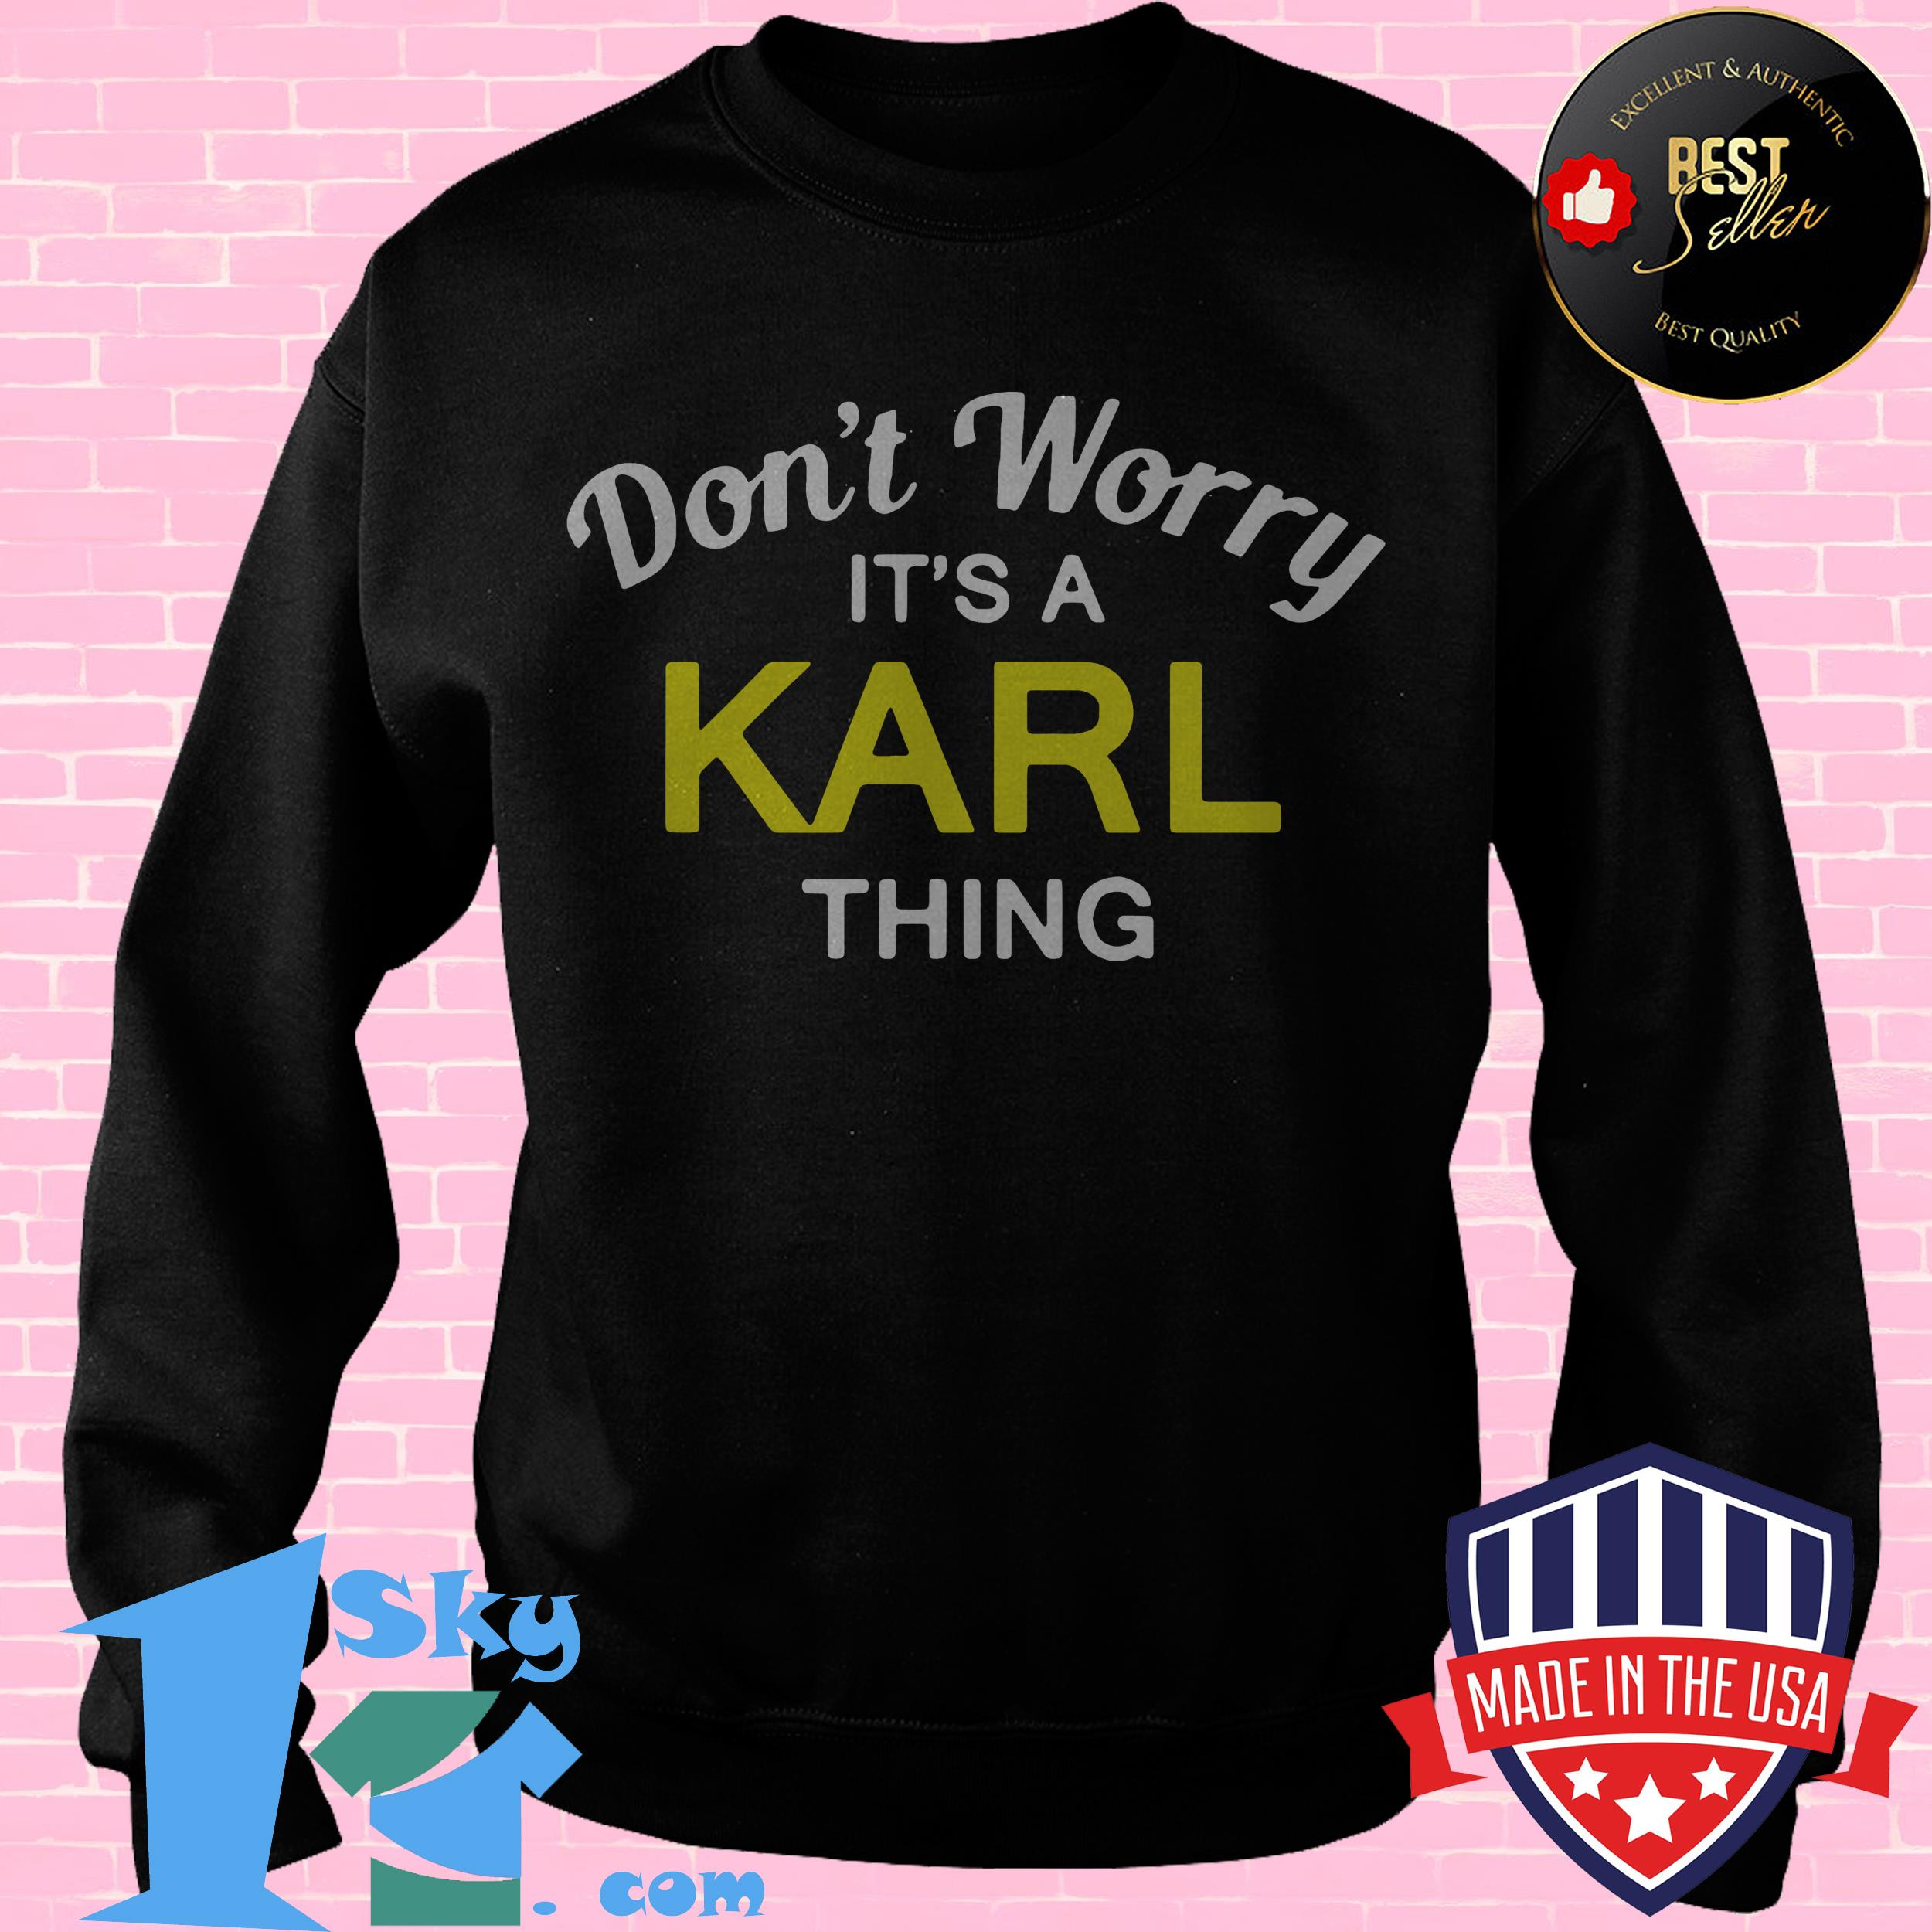 Don't Worry It's a Karl Thing shirt